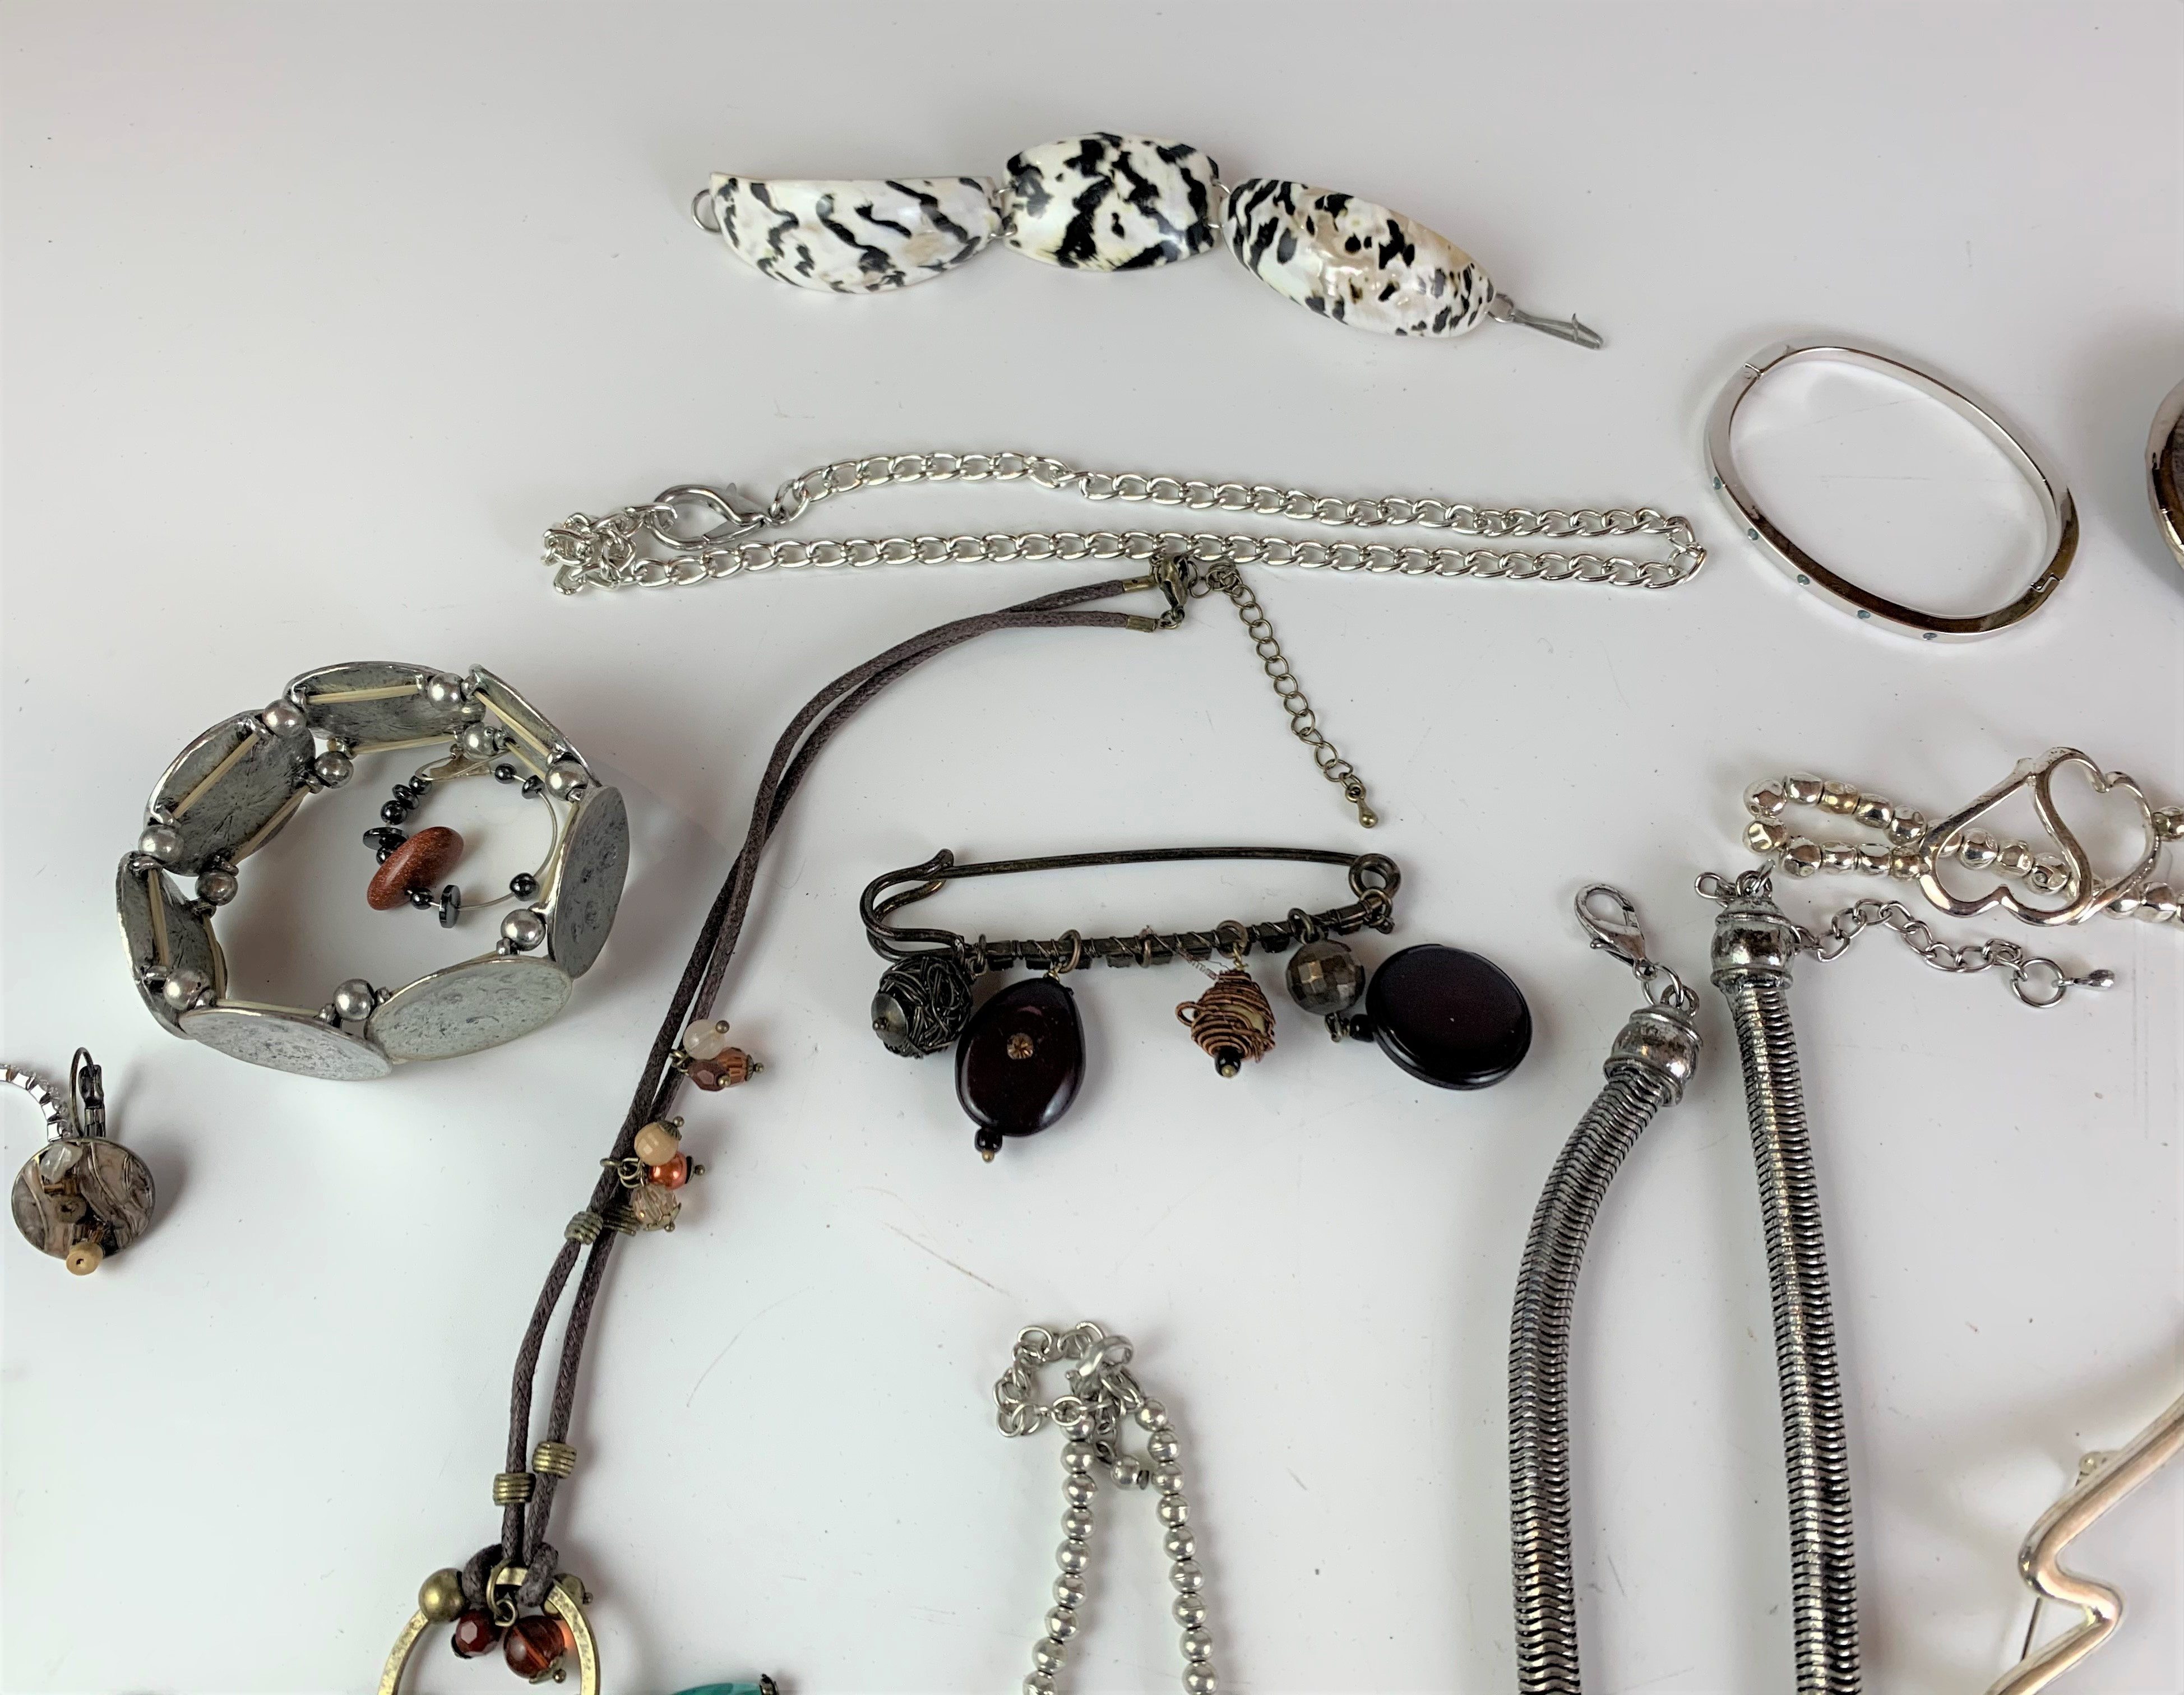 Large bag of assorted dress jewellery including necklaces, bracelets, watch, brooches etc. - Image 7 of 7